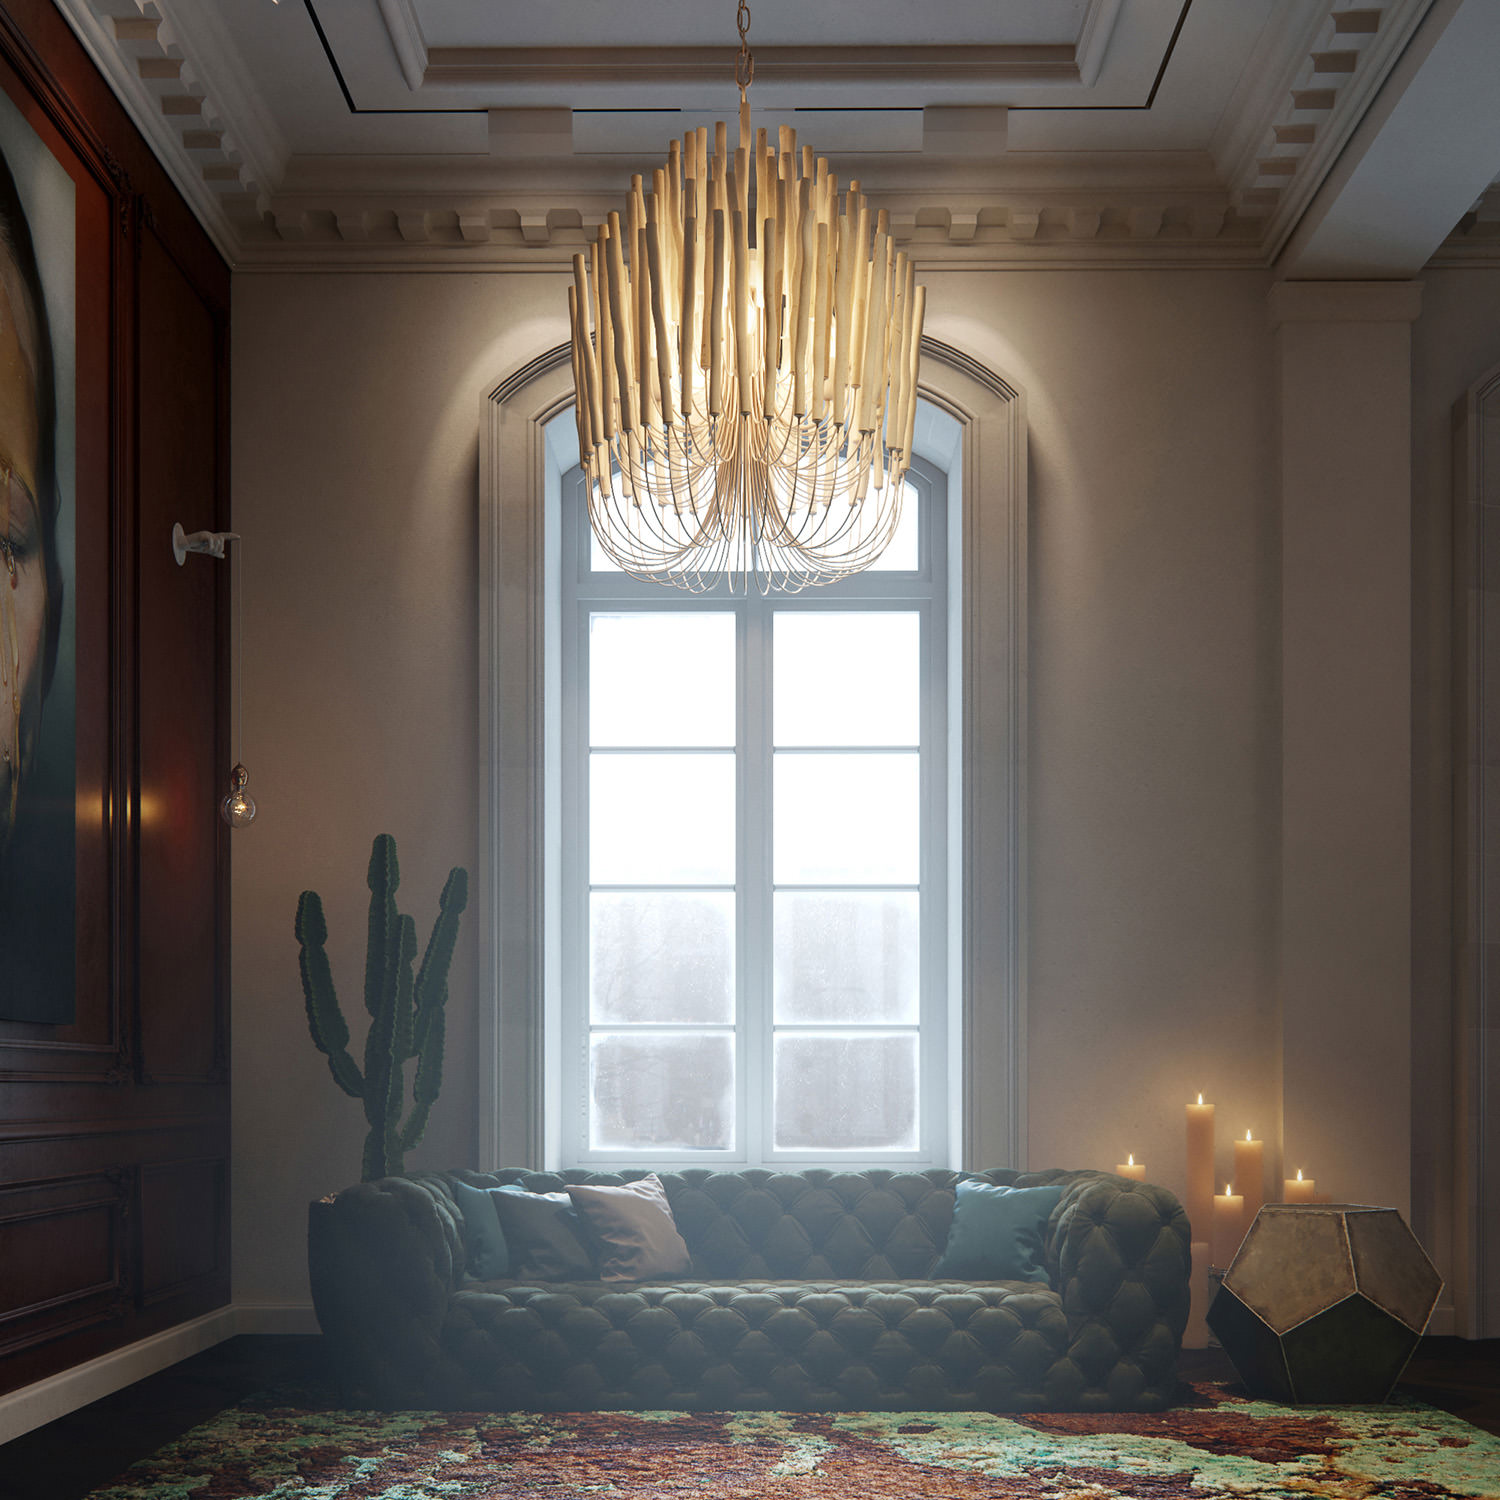 3D render of a hotel lounge concept with floor-to-ceiling windows, vintage moldings in soft candle light